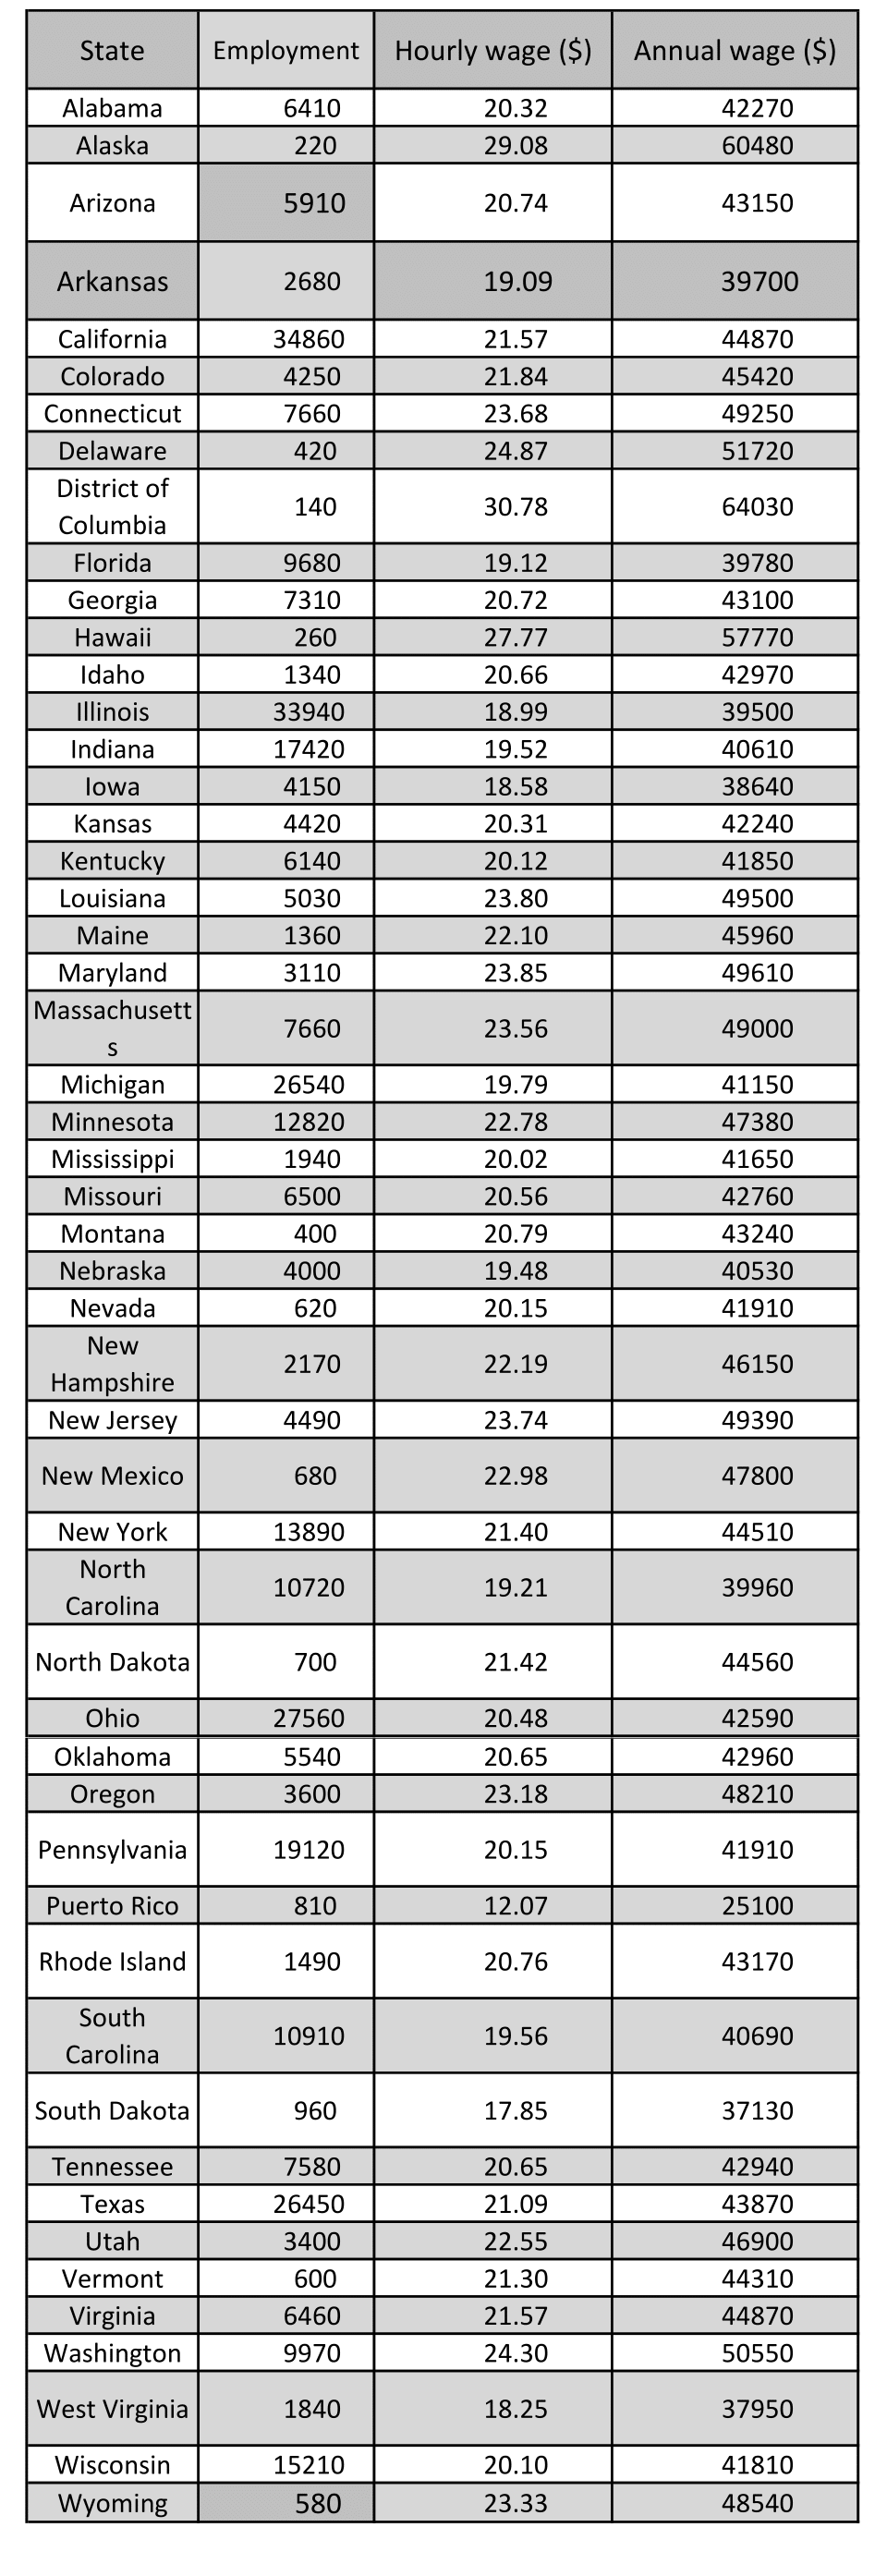 Machinist average hourly wage & salary for all 50 states — D.C. tops the list at $64k